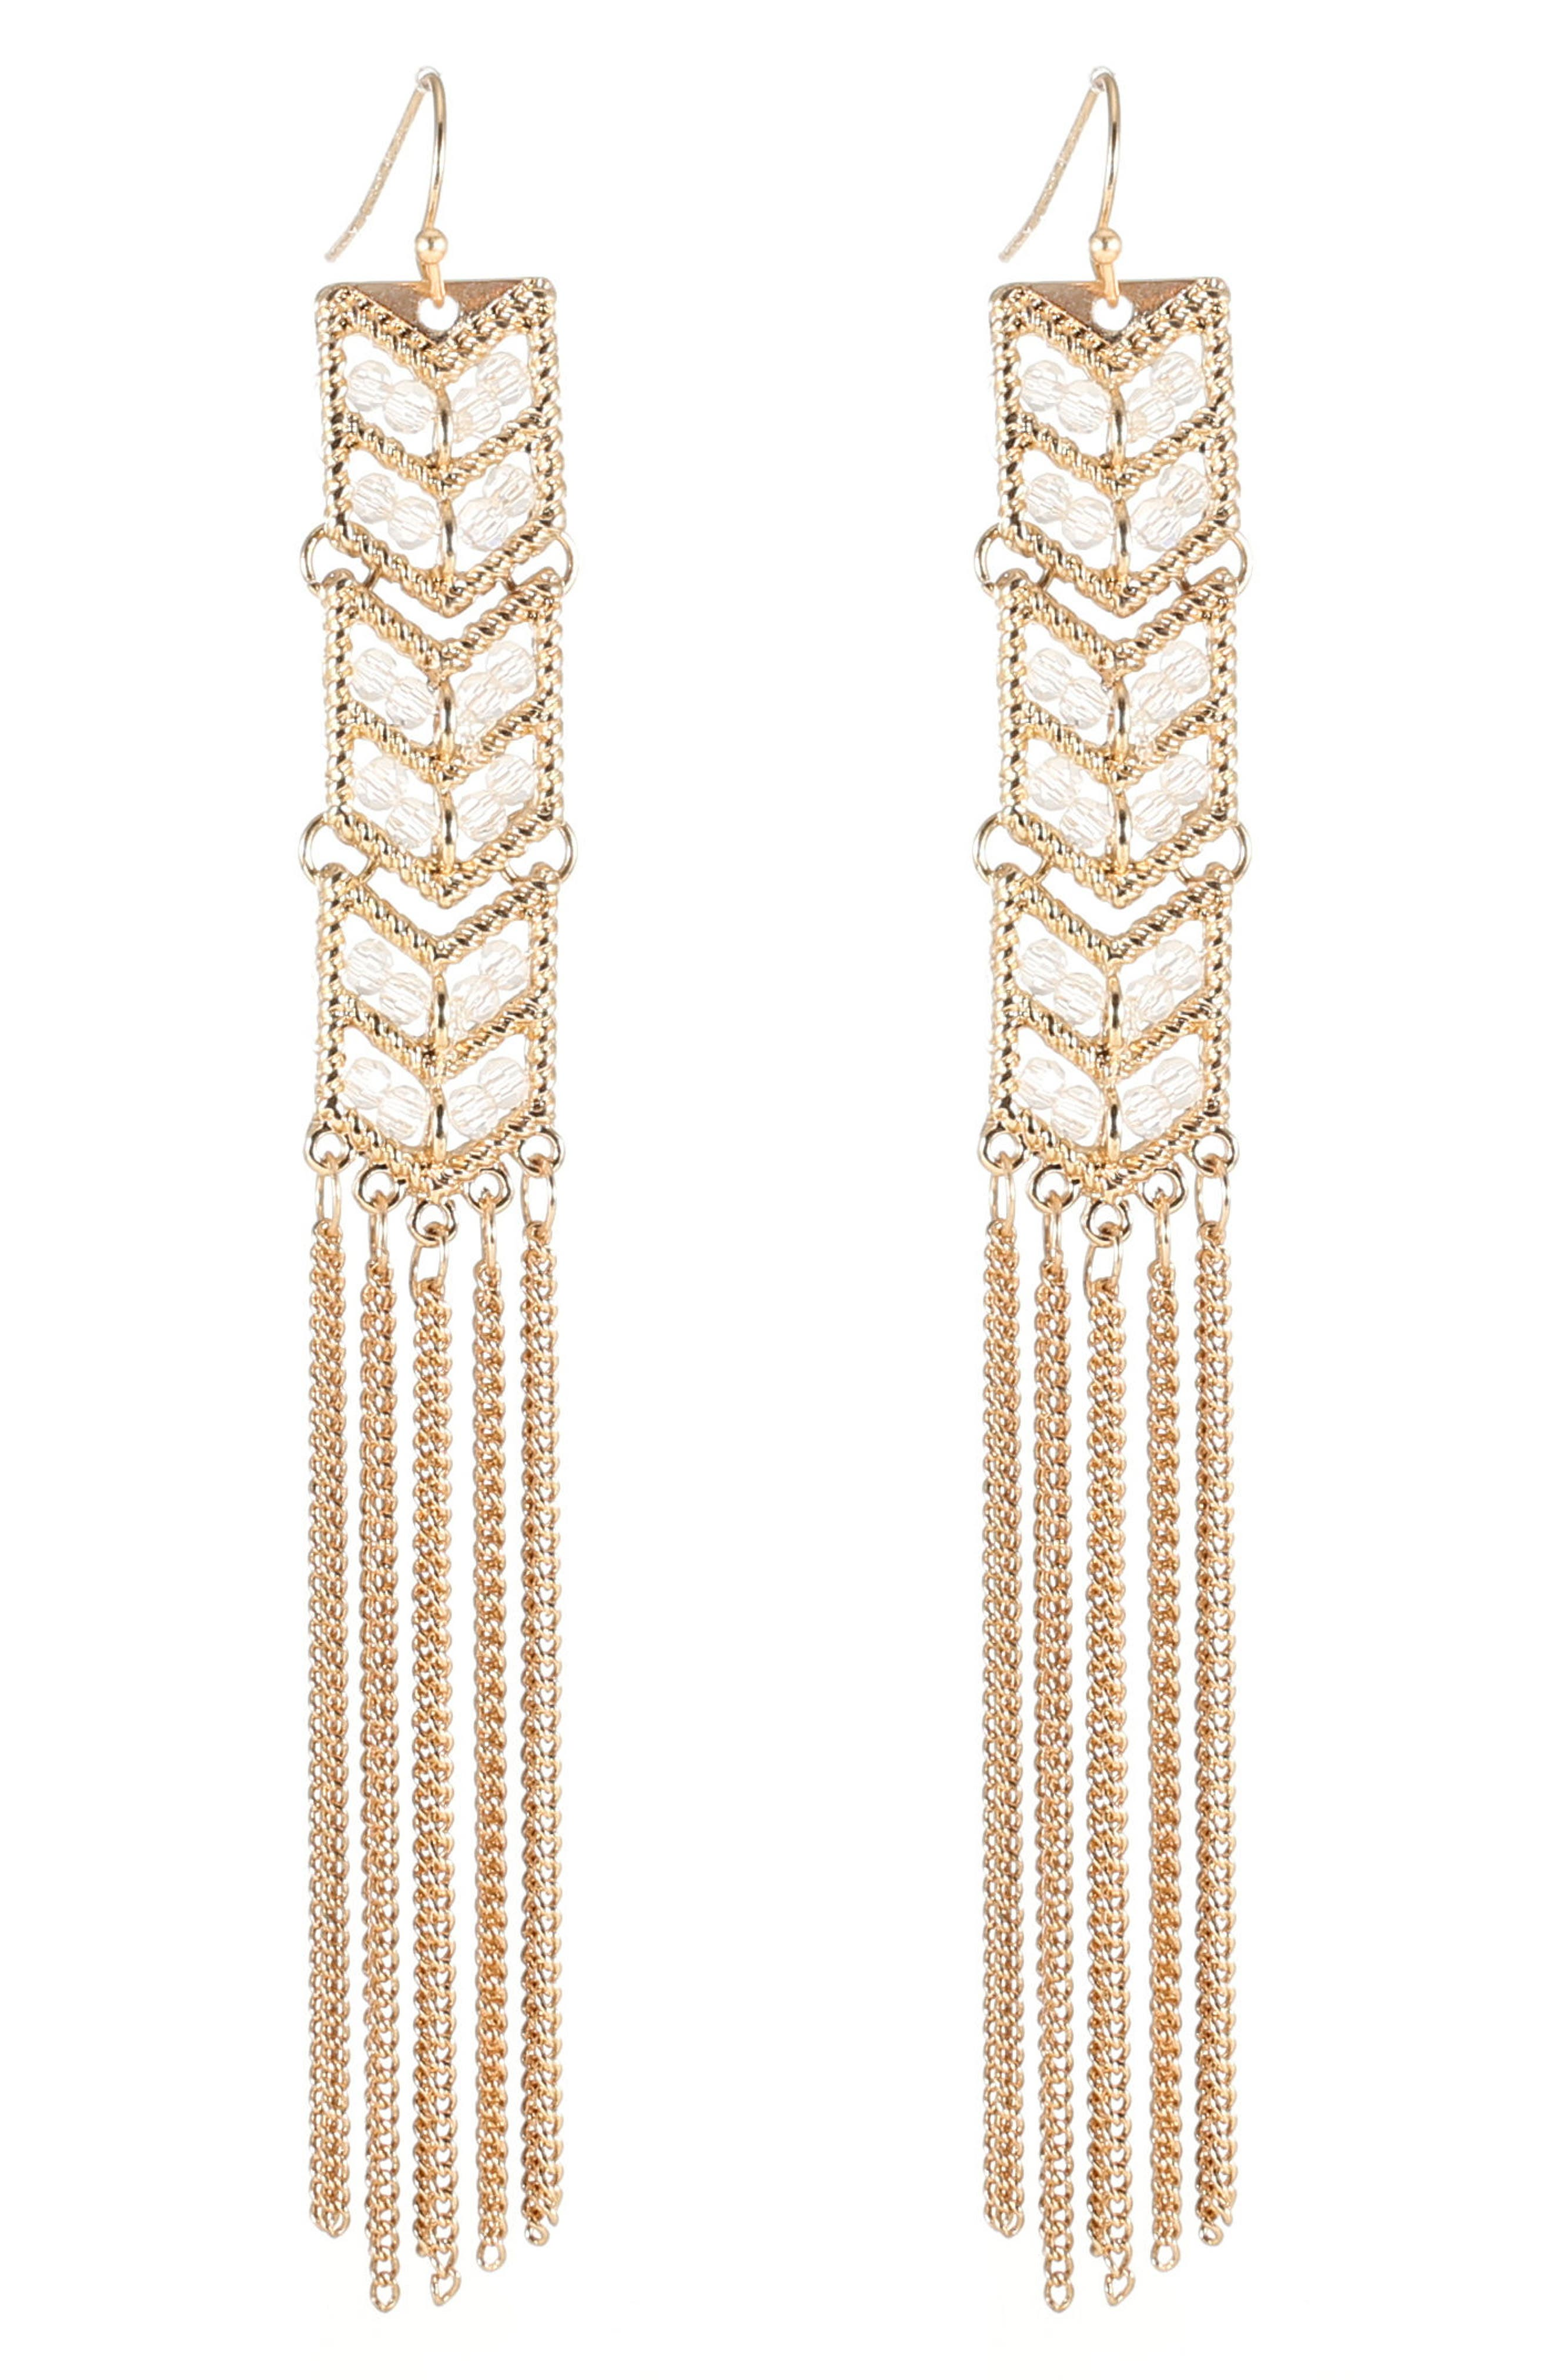 Tassel Chain Statement Earrings,                             Main thumbnail 1, color,                             Gold